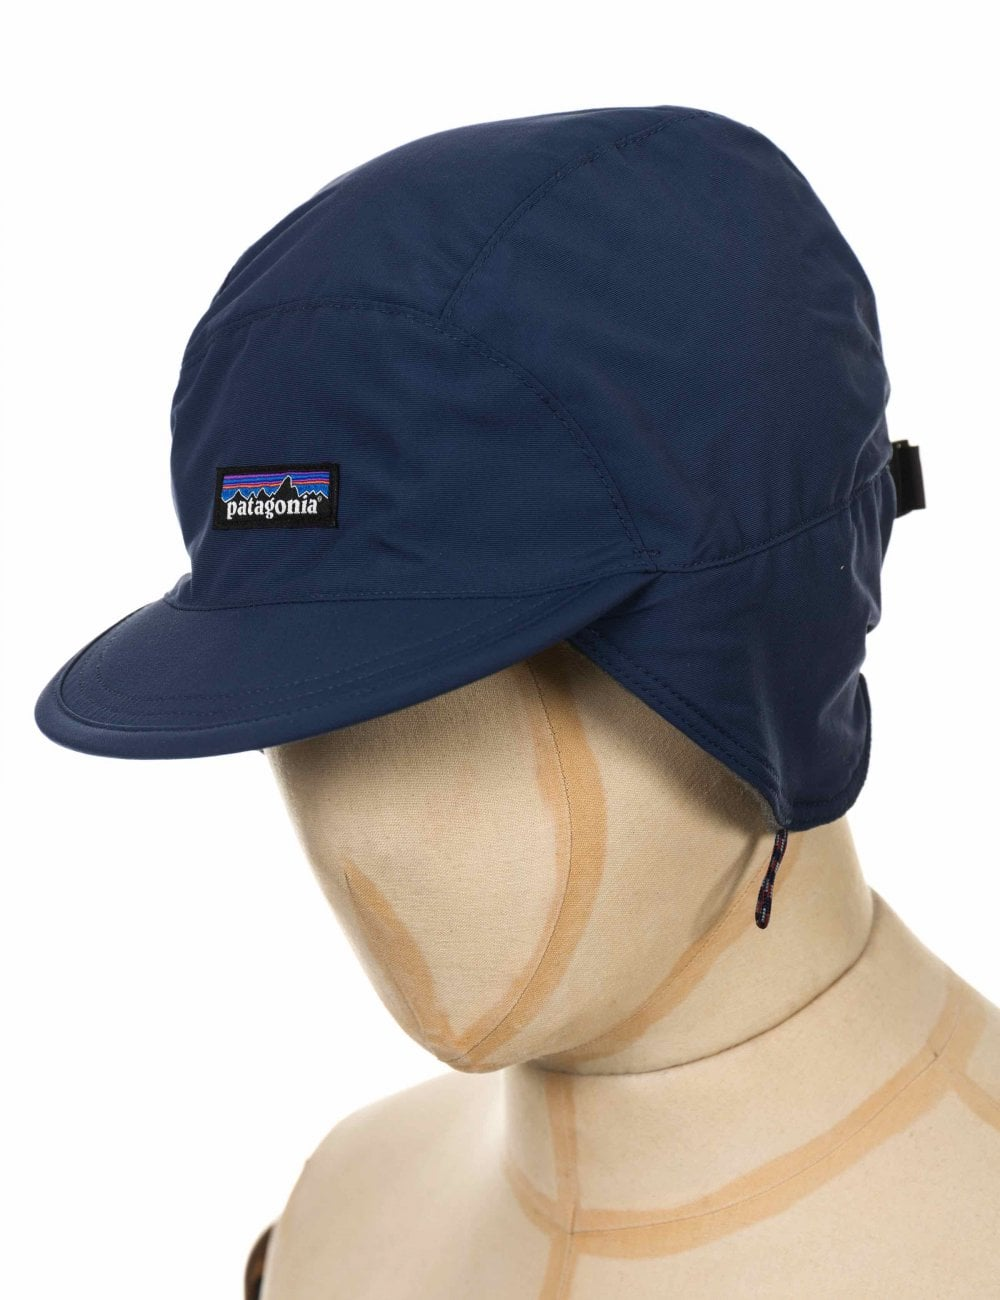 cb3d7877c4c Patagonia Shelled Synchilla Duckbill Cap - Stone Blue - Accessories ...